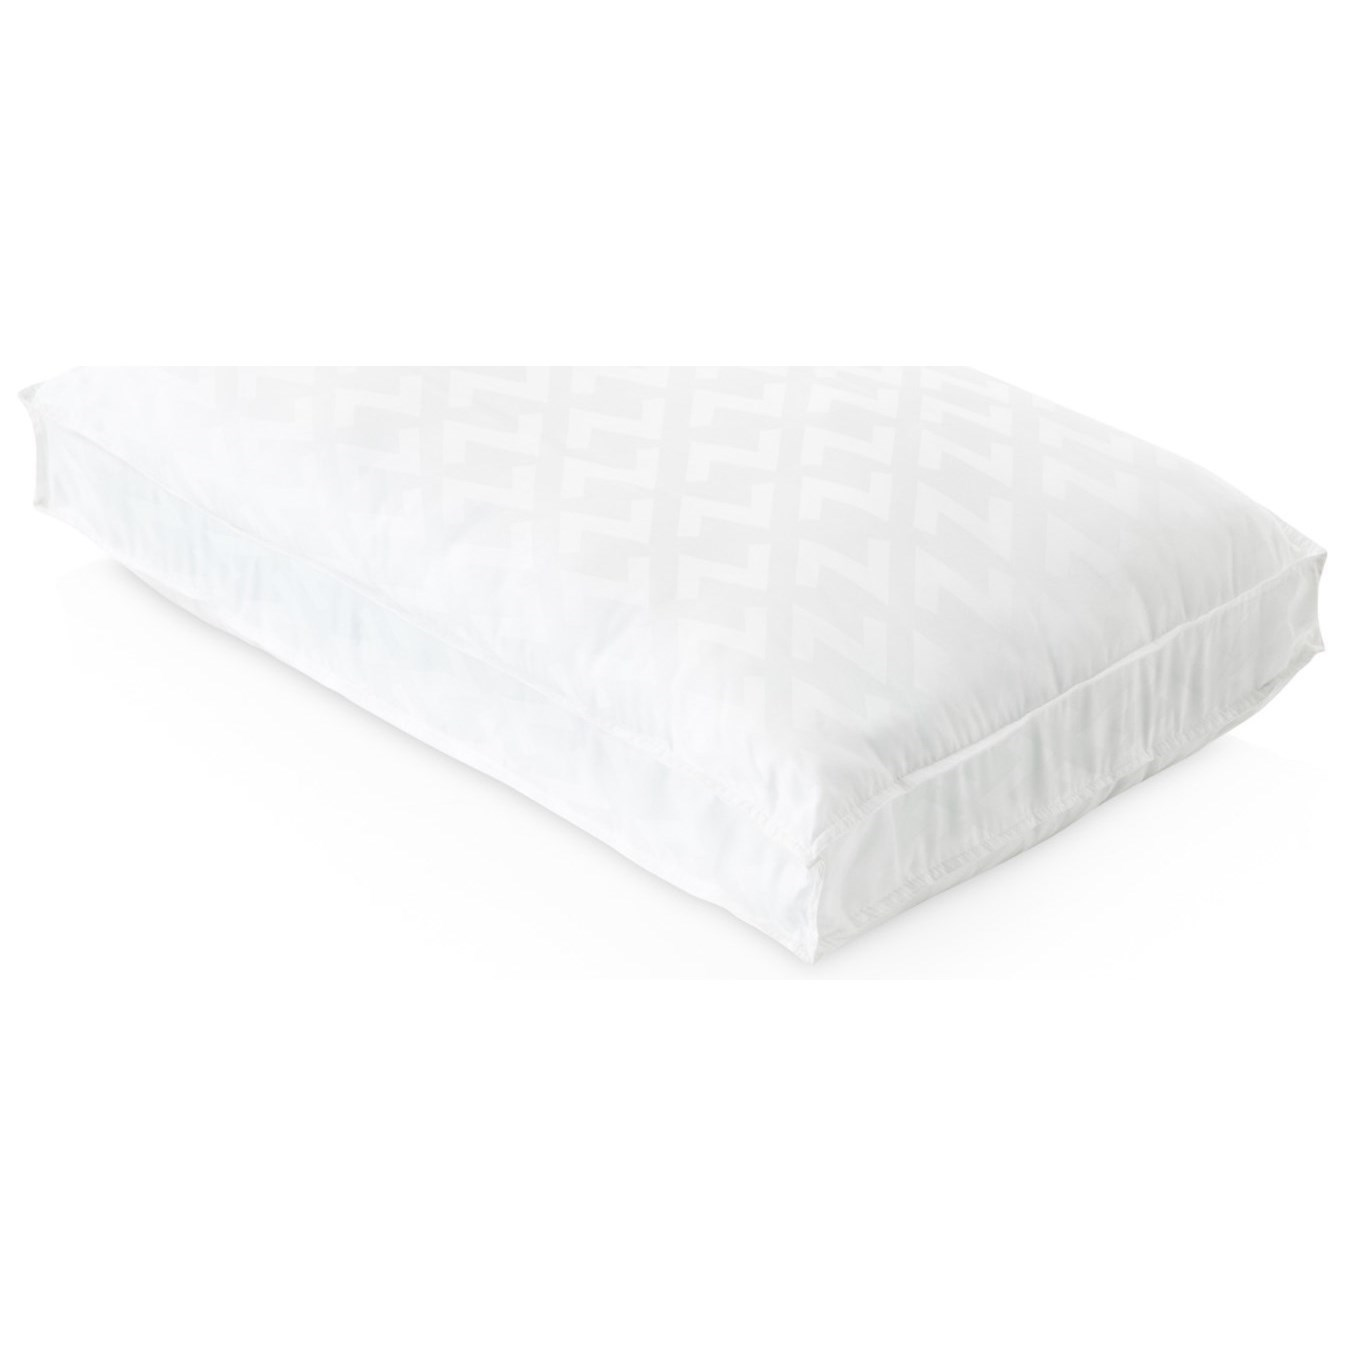 Malouf Gel Convolution™ King Gel Convolution™ Low Loft Pillow - Item Number: ZZKKLPCOGF